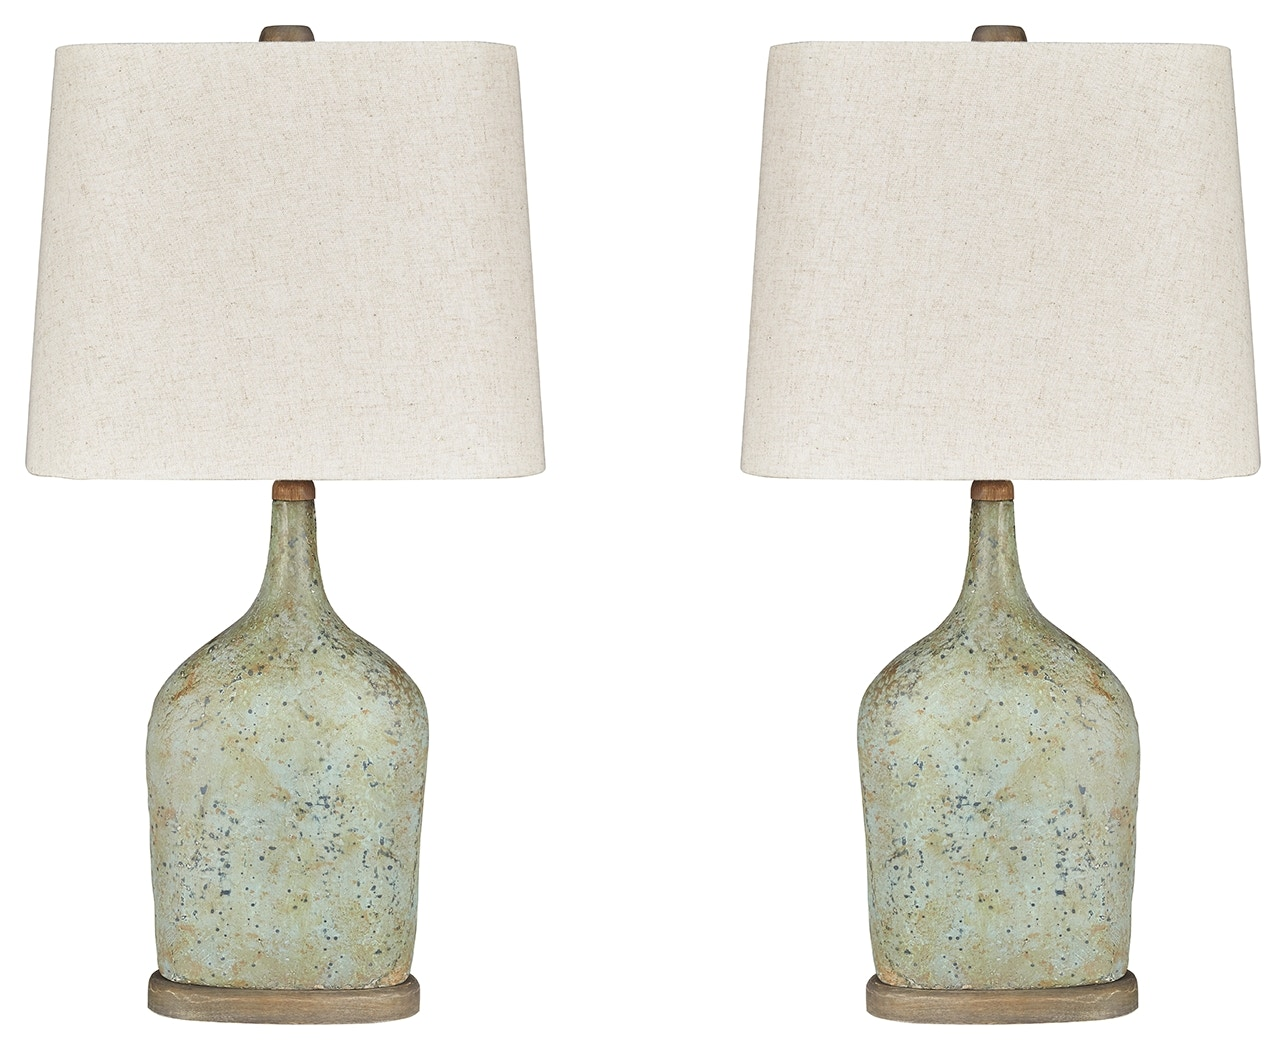 Signature Design by Ashley Lamps and